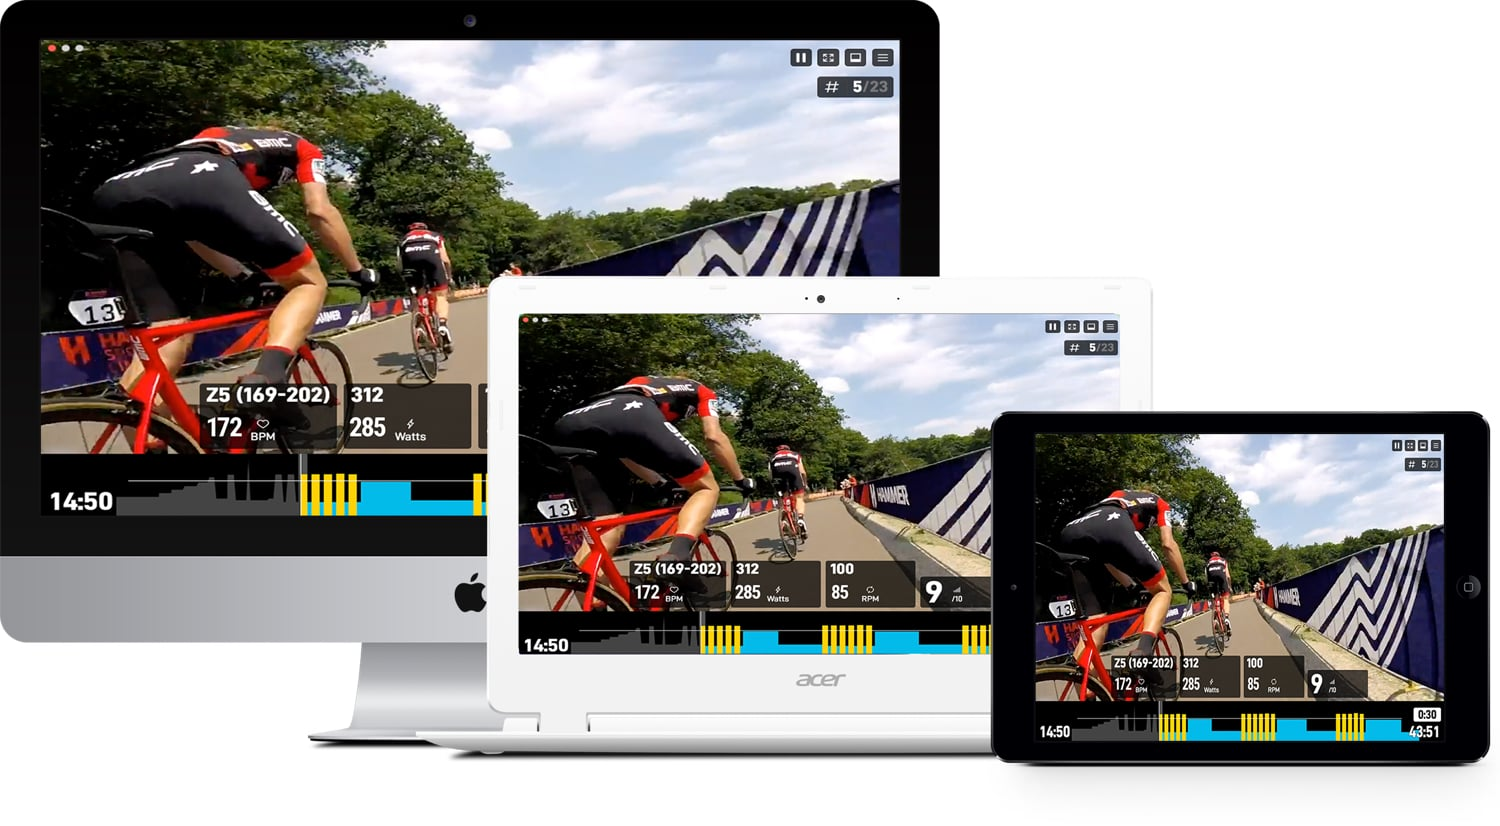 The Sufferfest: Complete Cycling and Triathlon Training App